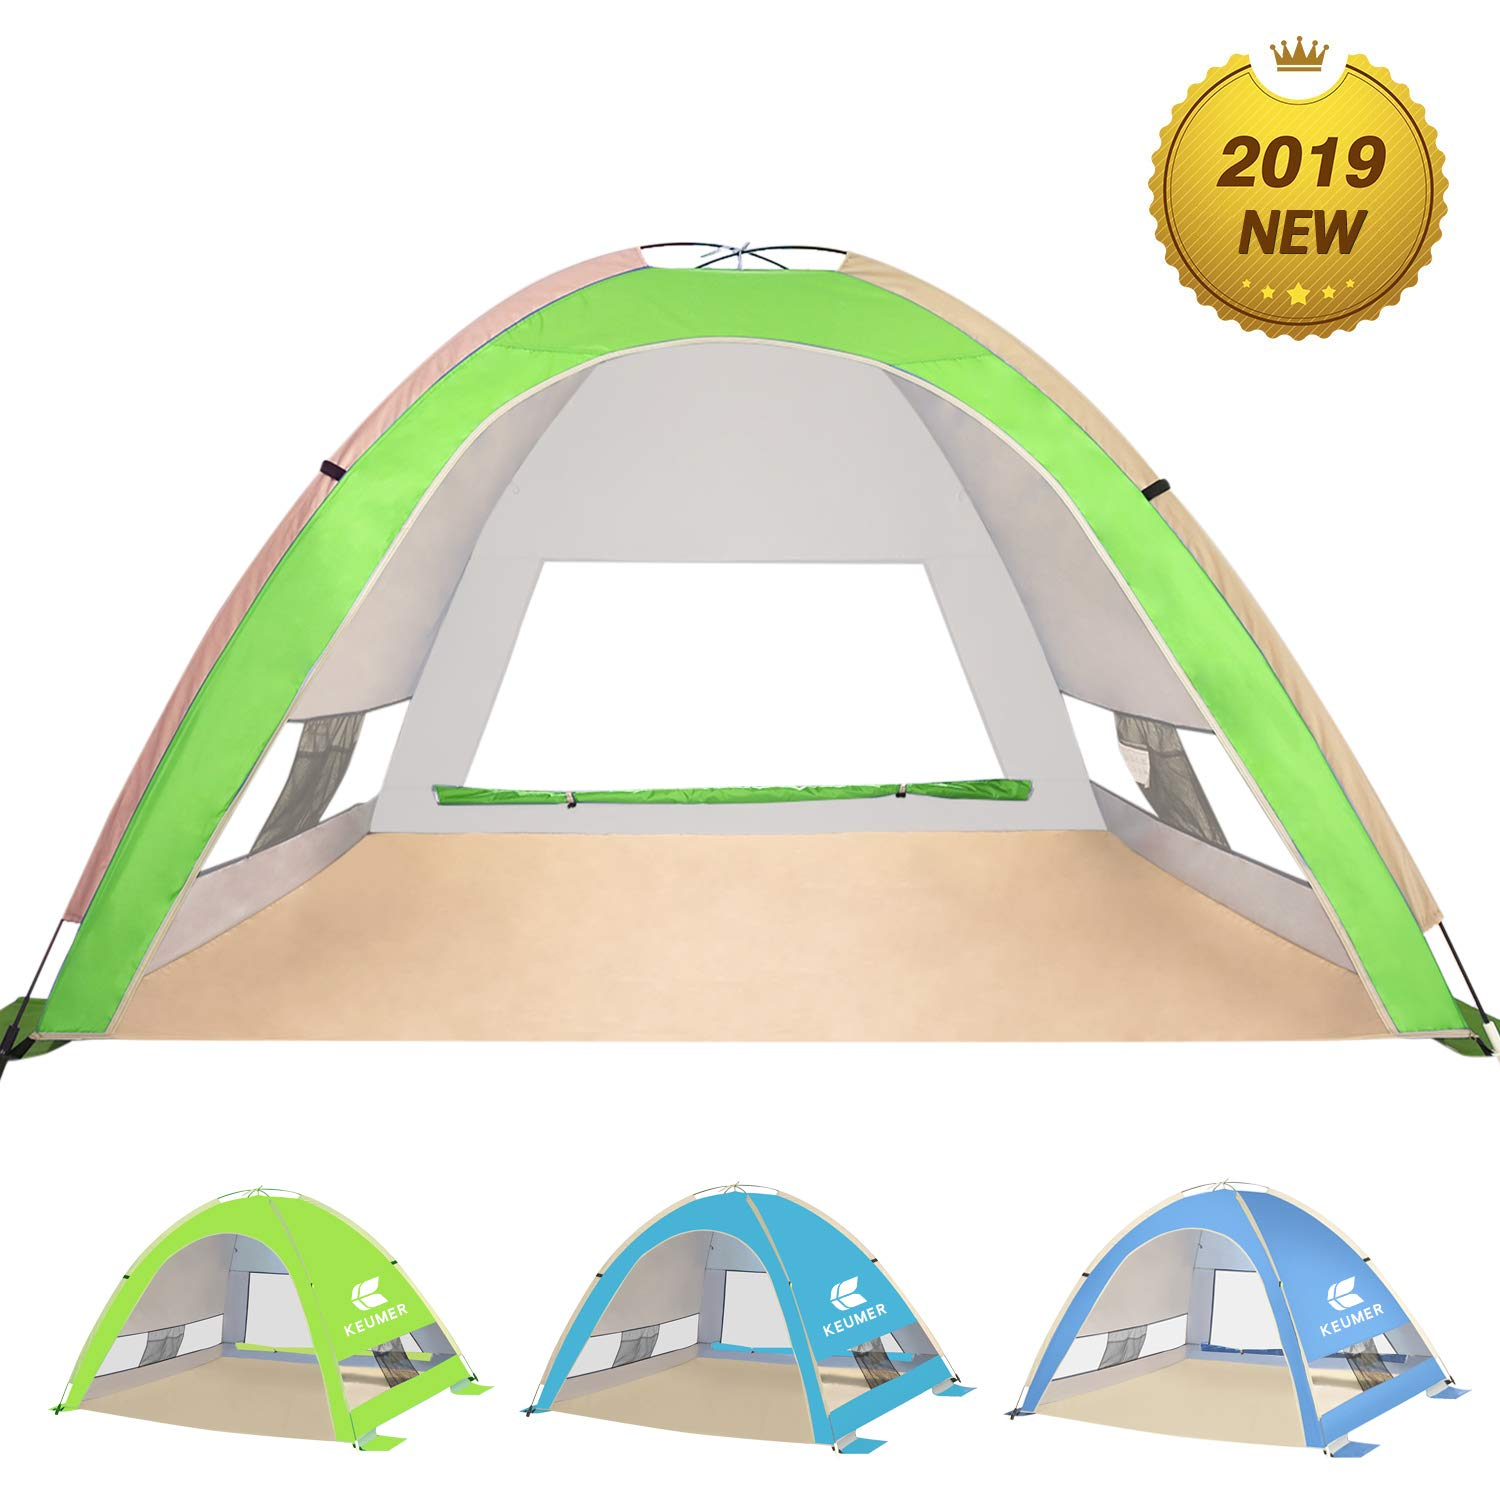 KEUMER Venustas Large Pop Up Beach Tent Automatic Sun Shelter Cabana Easy Set Up Light Weight Camping Fishing Tents 4 Person Anti-UV Portable Sunshade for Family Adults by KEUMER